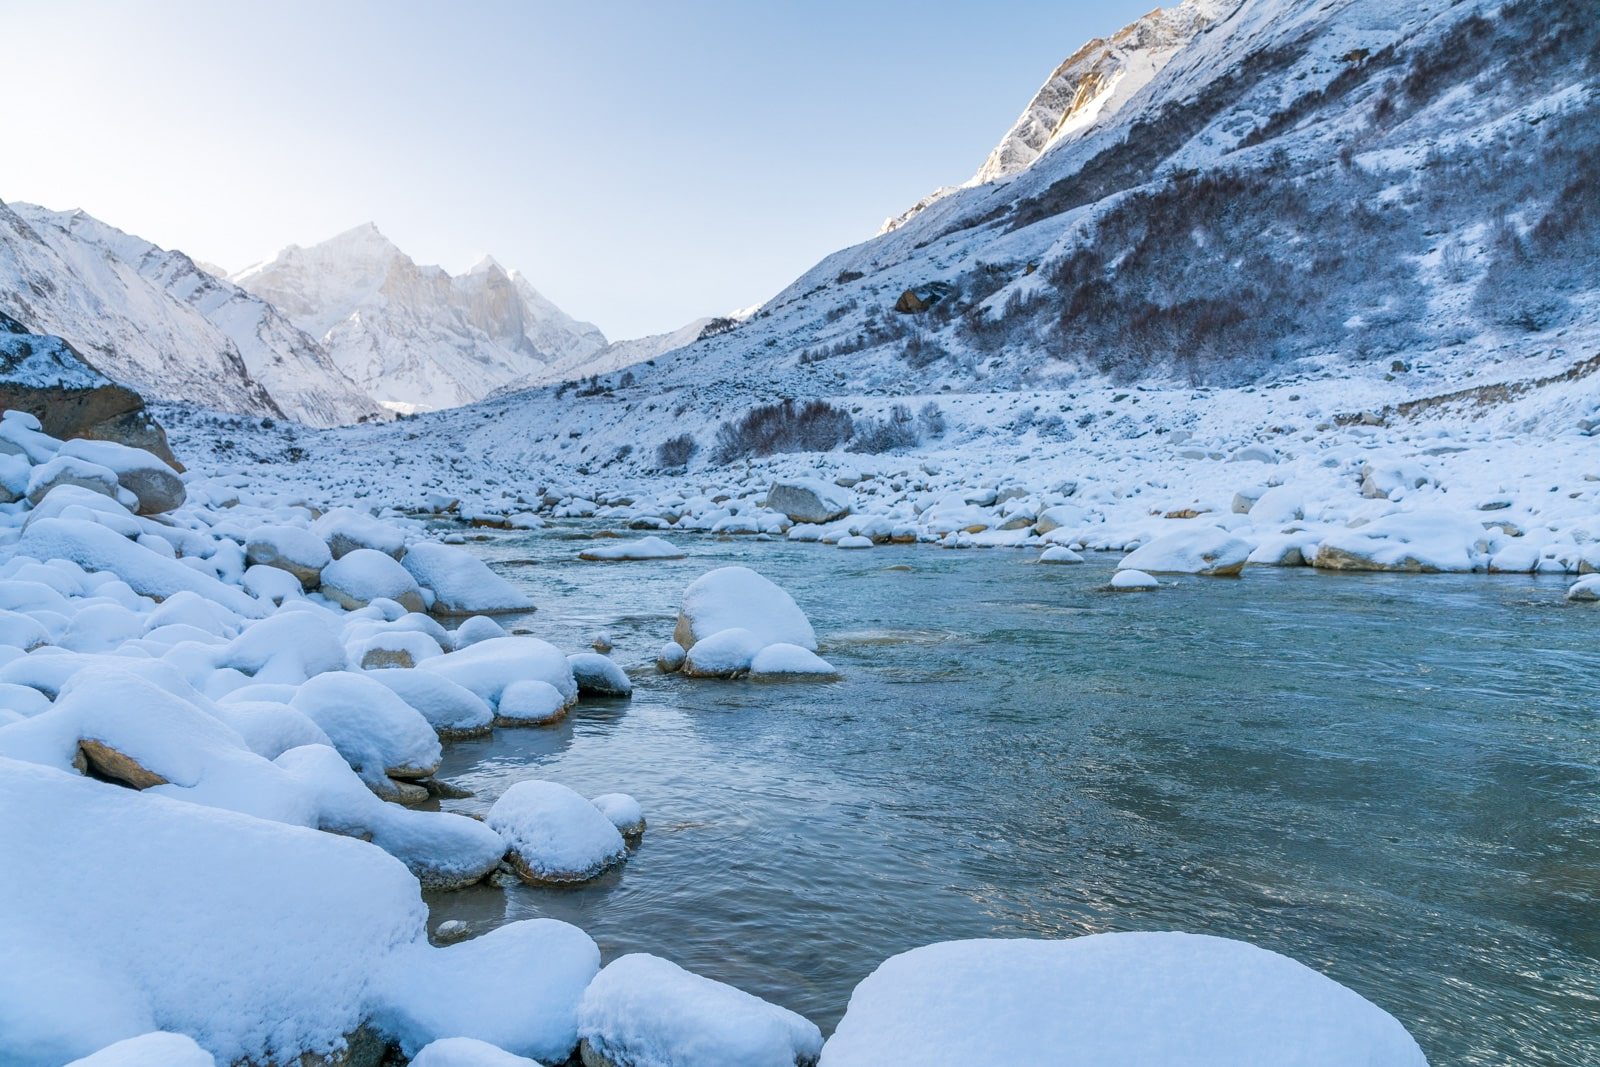 Trekking to the start of the Ganges River in Uttarakhand, India - Snowy sunrise in Bhojwasa with Bhagirathi River - Lost With Purpose travel blog